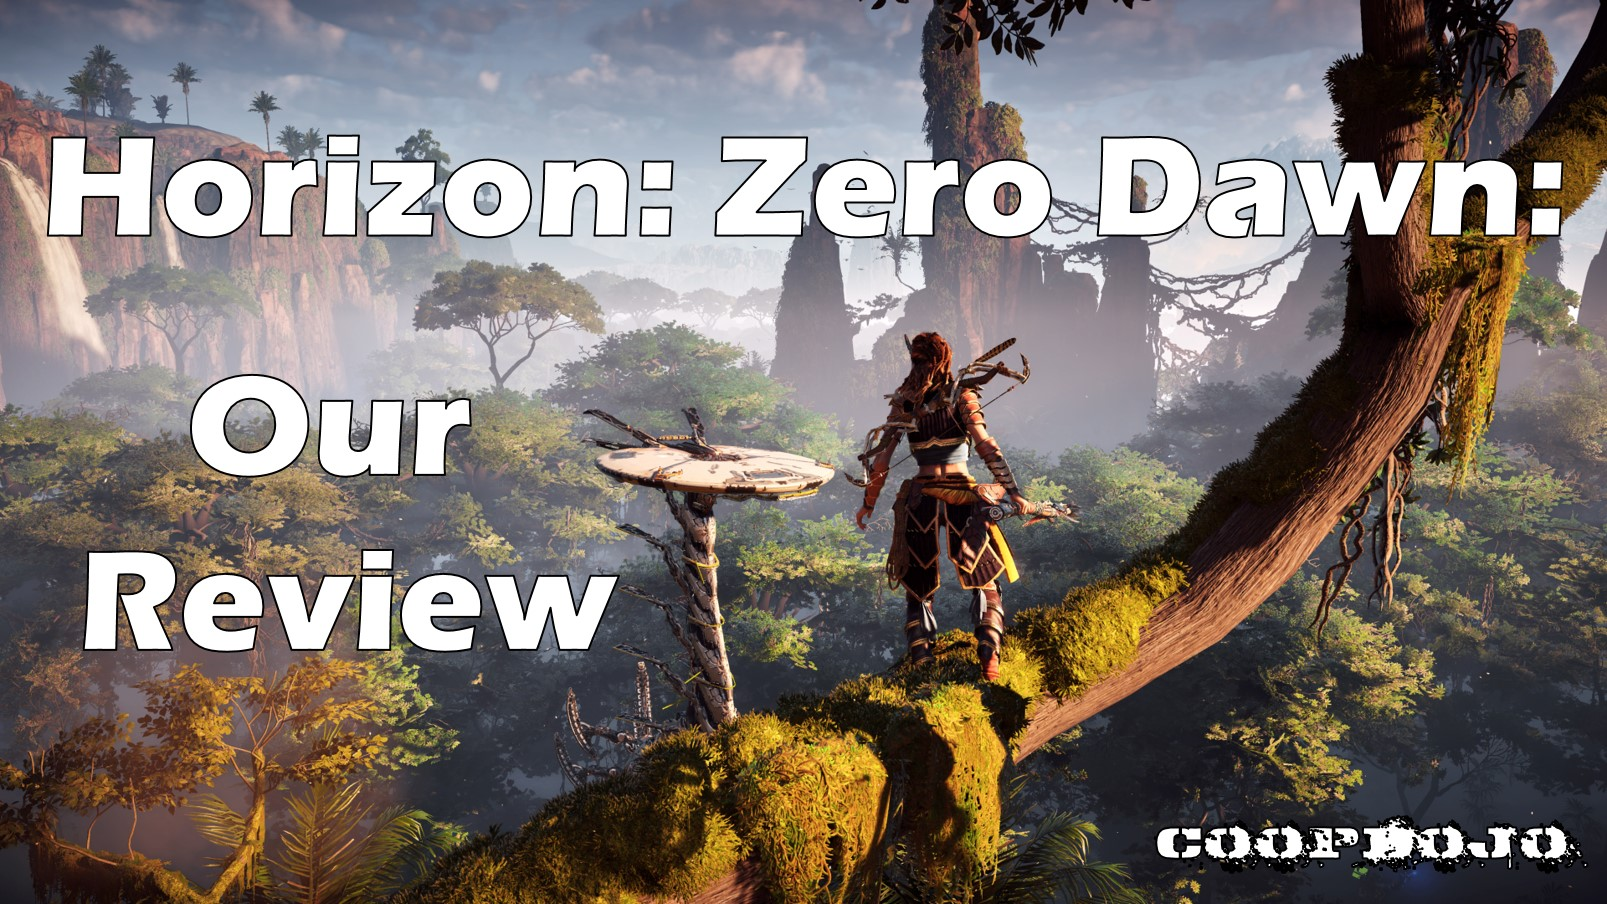 Our Review Of Horizon: Zero Dawn